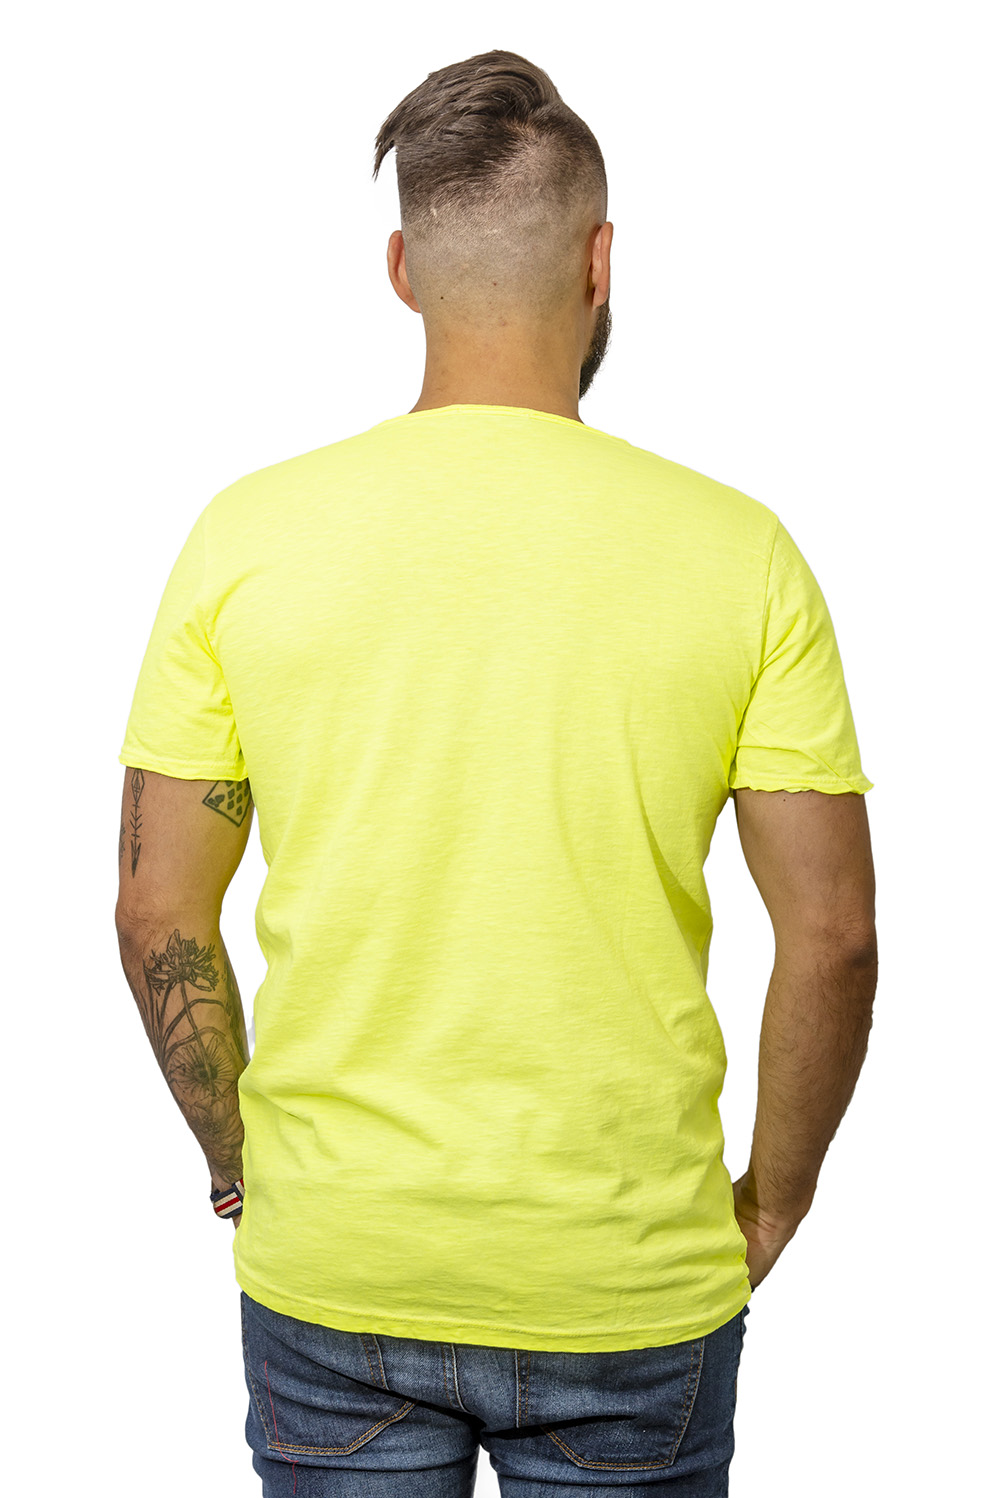 Mens T-shirt with pocket yellow back